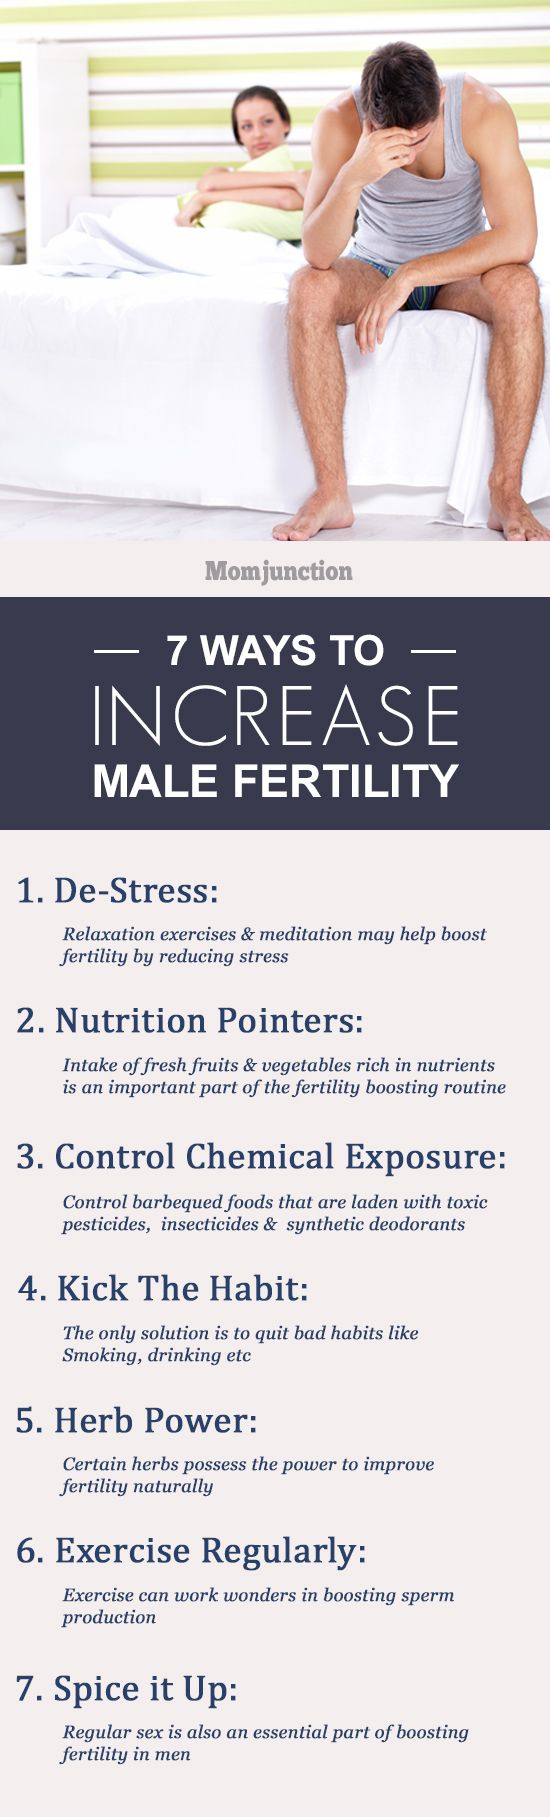 25+ best ideas about Ways To Increase Fertility on ...